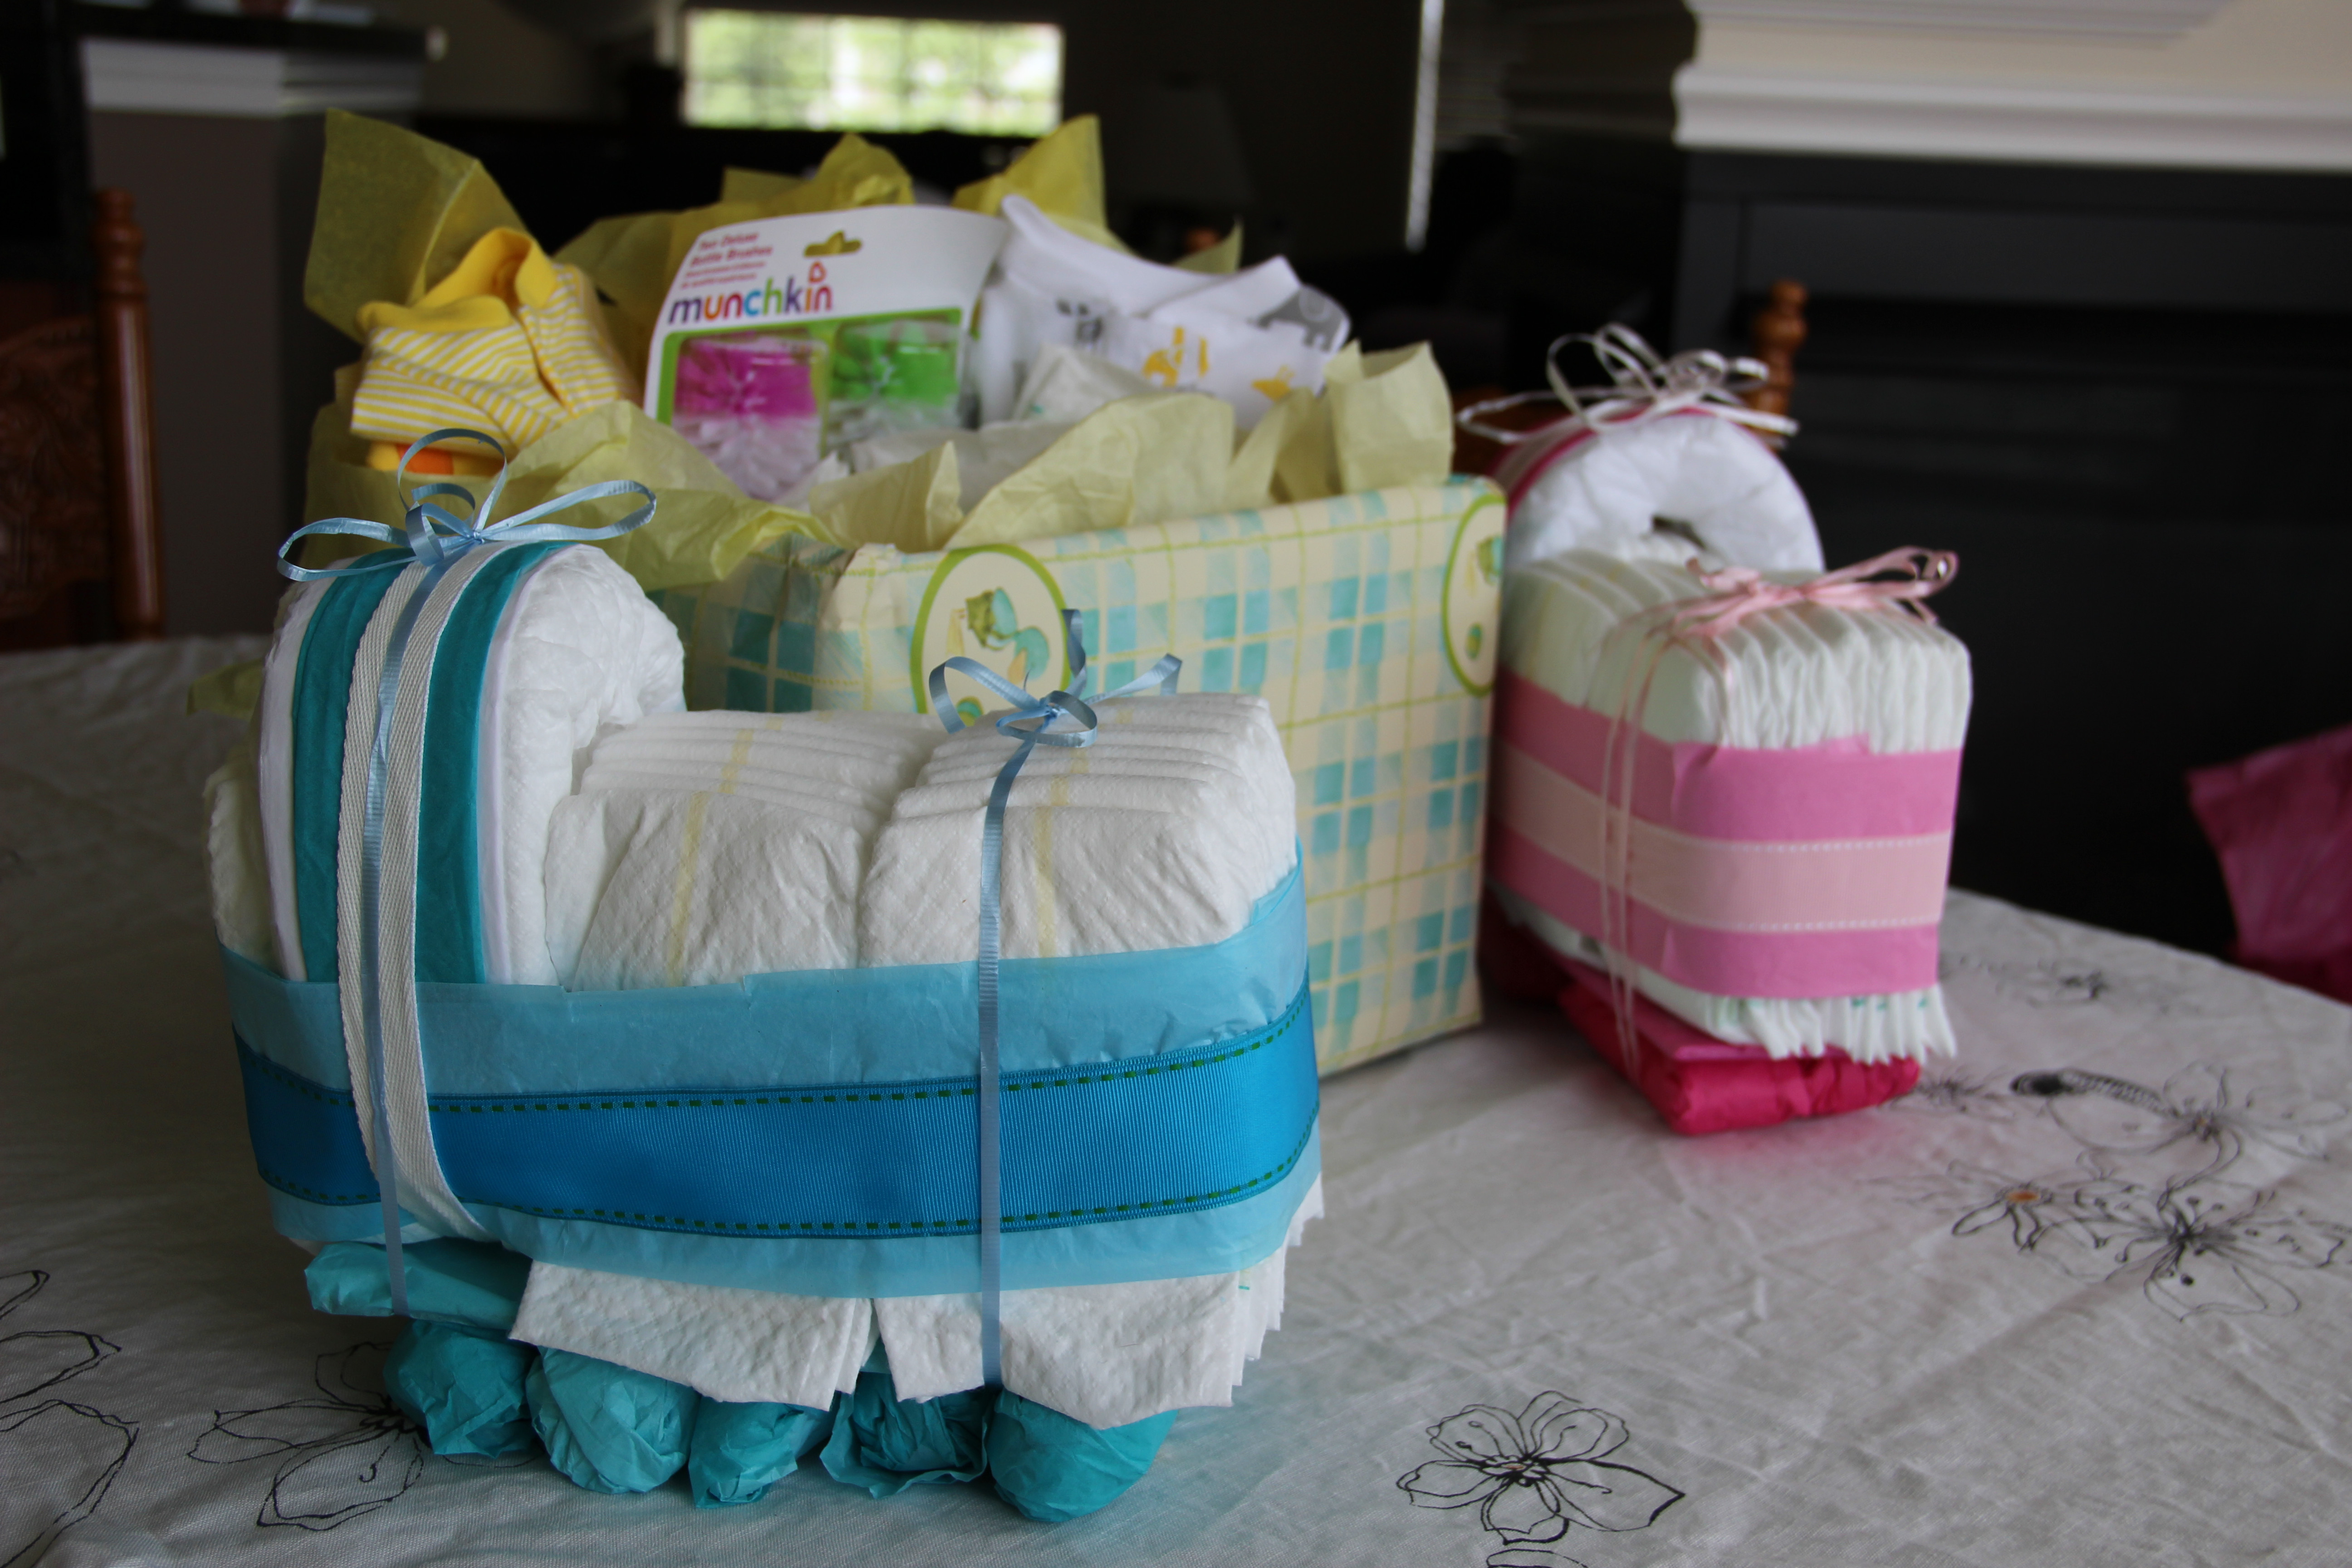 Girl Baby Shower Gift Ideas  The Importance of Being Cleveland